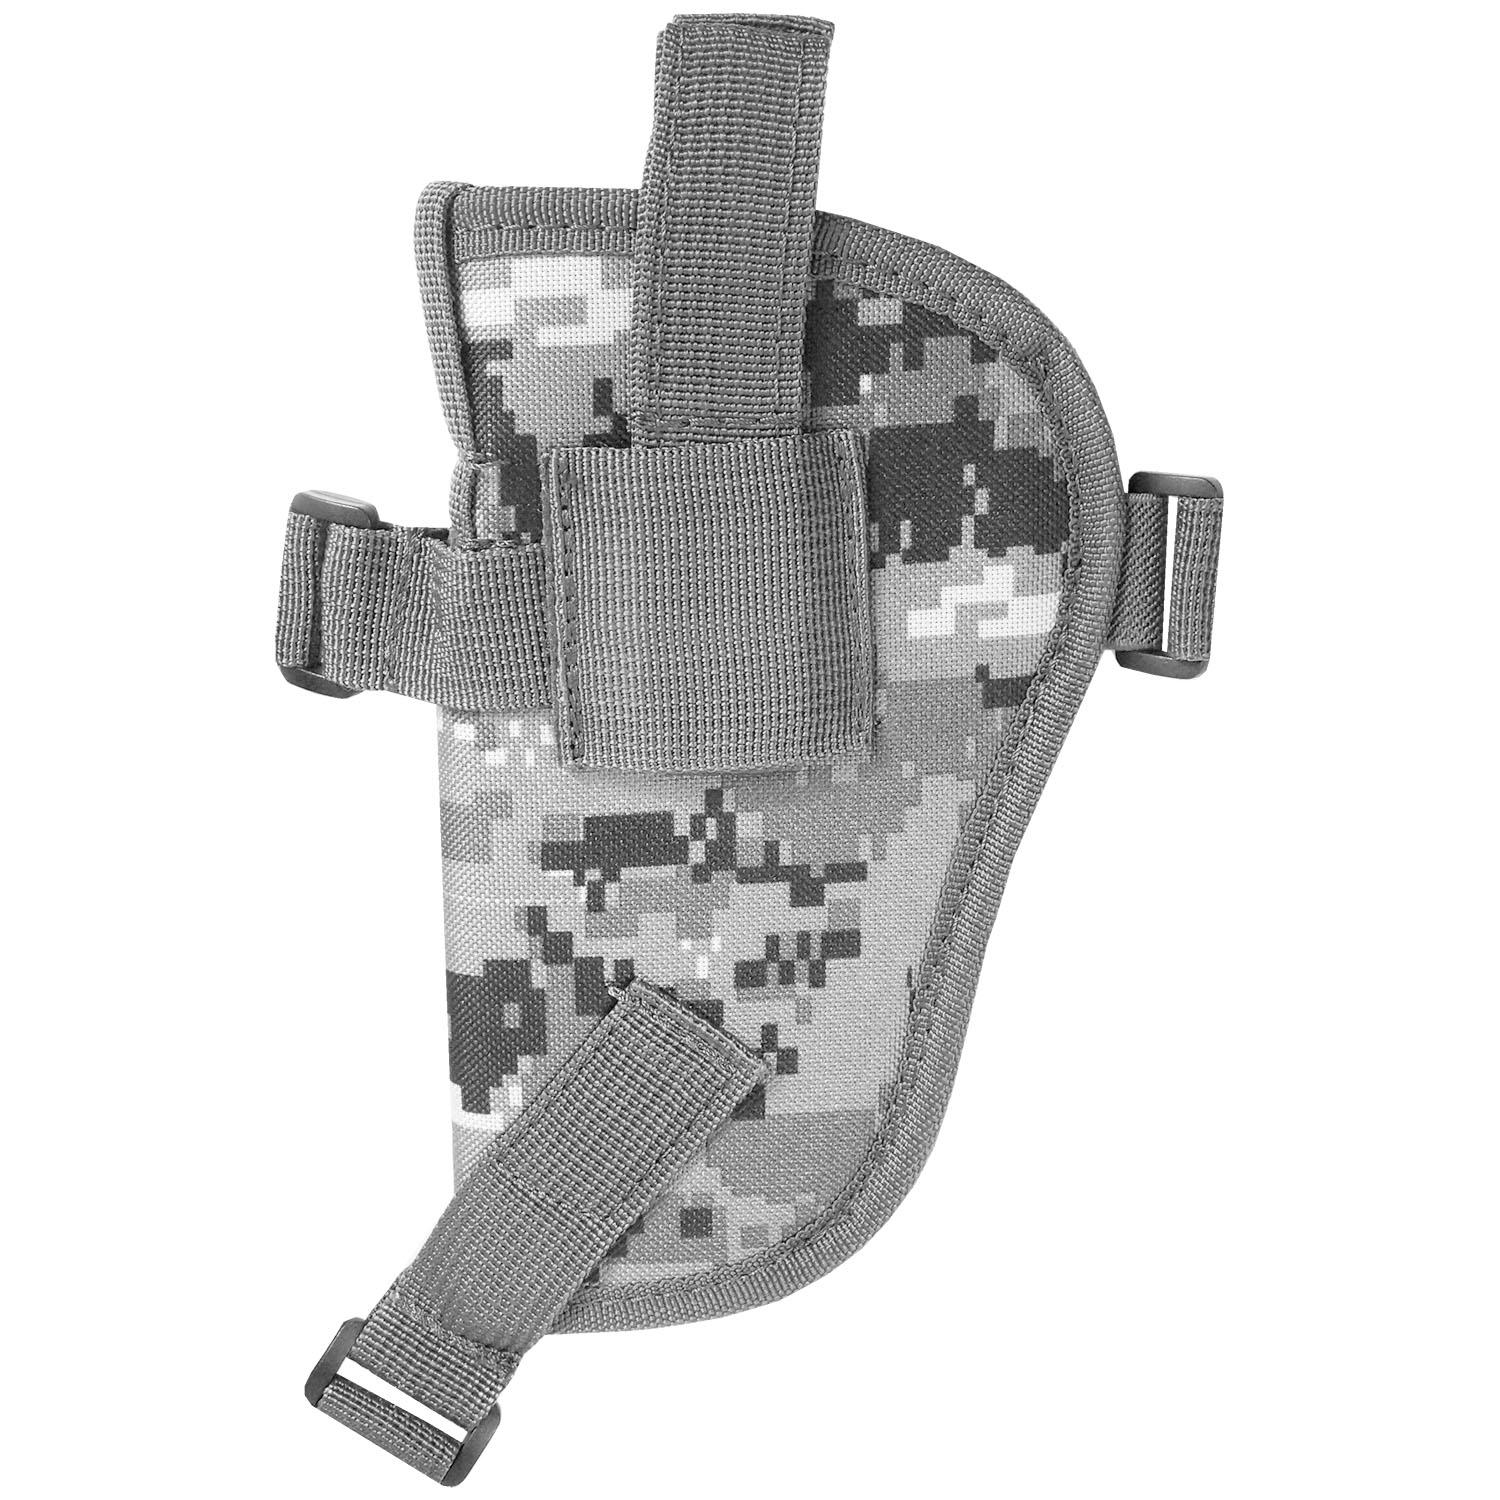 Explorer H24-BK Fully Adjustable Every Day Carry Tactical Under Arm Double Pistol Carrier Black